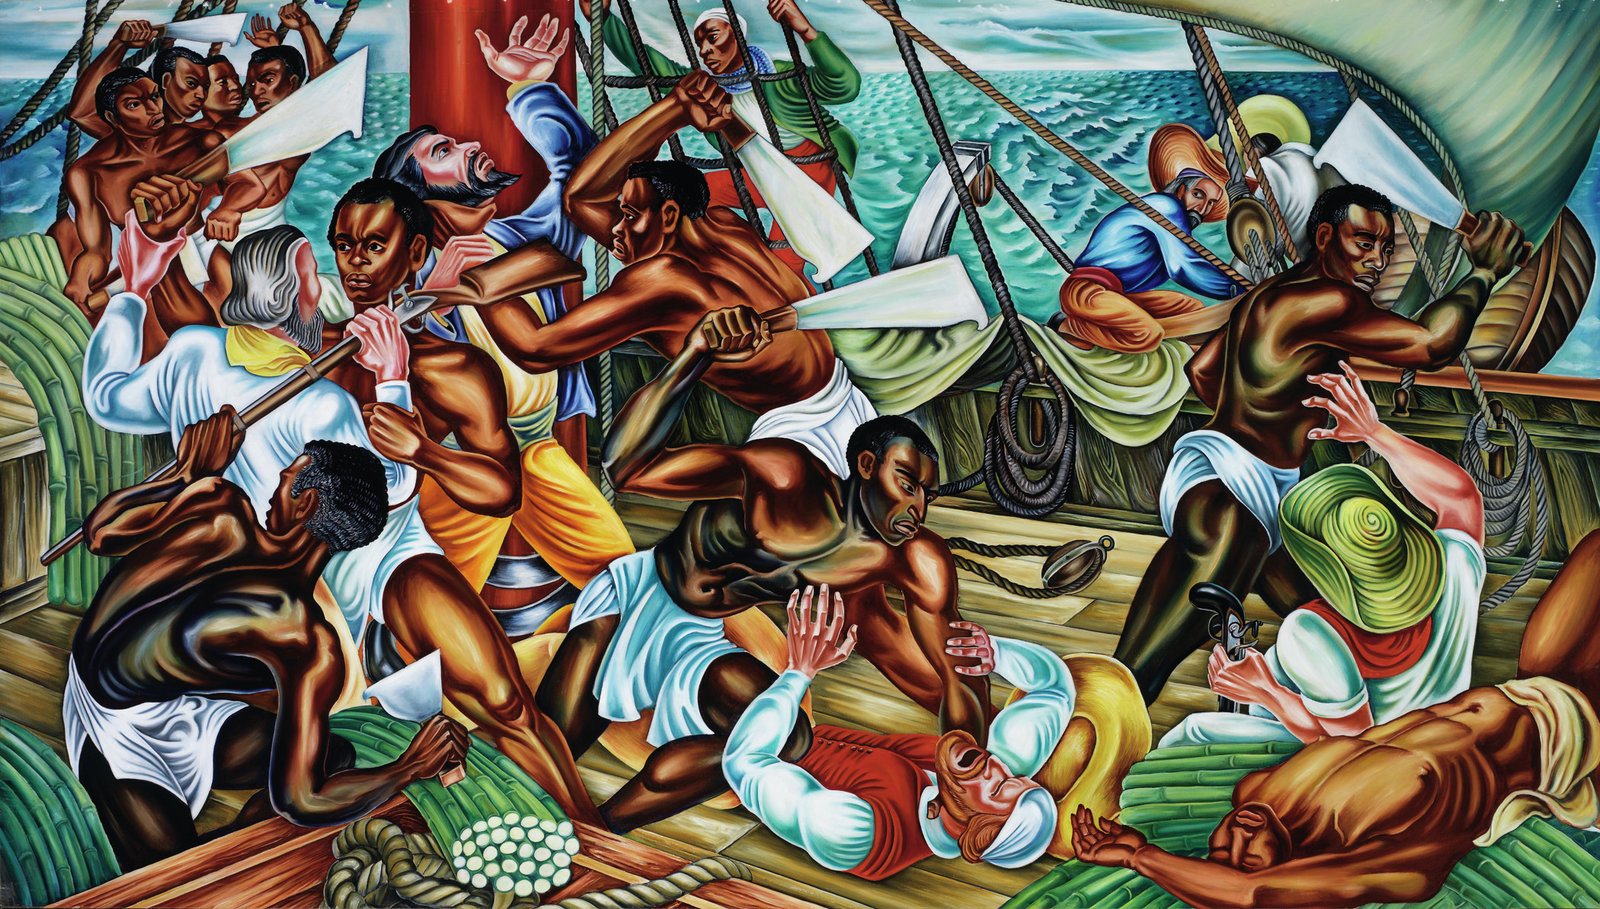 'The Mutiny on the Amistad' by Hale Woodruff  Oil on canvas, approx 6x10 feet, 1939, originally installed in library, Talladega College, Alabama. One of six monumental canvases created for the new library at Talladega College. The first three paintings, completed in 1939, deal with the Amistad mutiny and its aftermath as emblems of heroic African protest against slavery and New Englanders' support of the rebellious slaves' cause; the second trio, completed in 1942, celebrates the opening of Talladega College and the construction of the library itself as paradigms of black Americans' progress since the Civil War. Woodruff studied at prestigious art institutes in the US. He spent time in Paris and he went to Mexico to study with Diego Rivera. The masterful, complex composition is full of movement, color and glistening bodies. He made it clear in the portraiture that these are distinct individuals. Woodruff has a rightful place among America's pre-eminent social realists of the 1930s and early 1940s.   Photo credit: Peter Harholdt/Copyright Talladega College